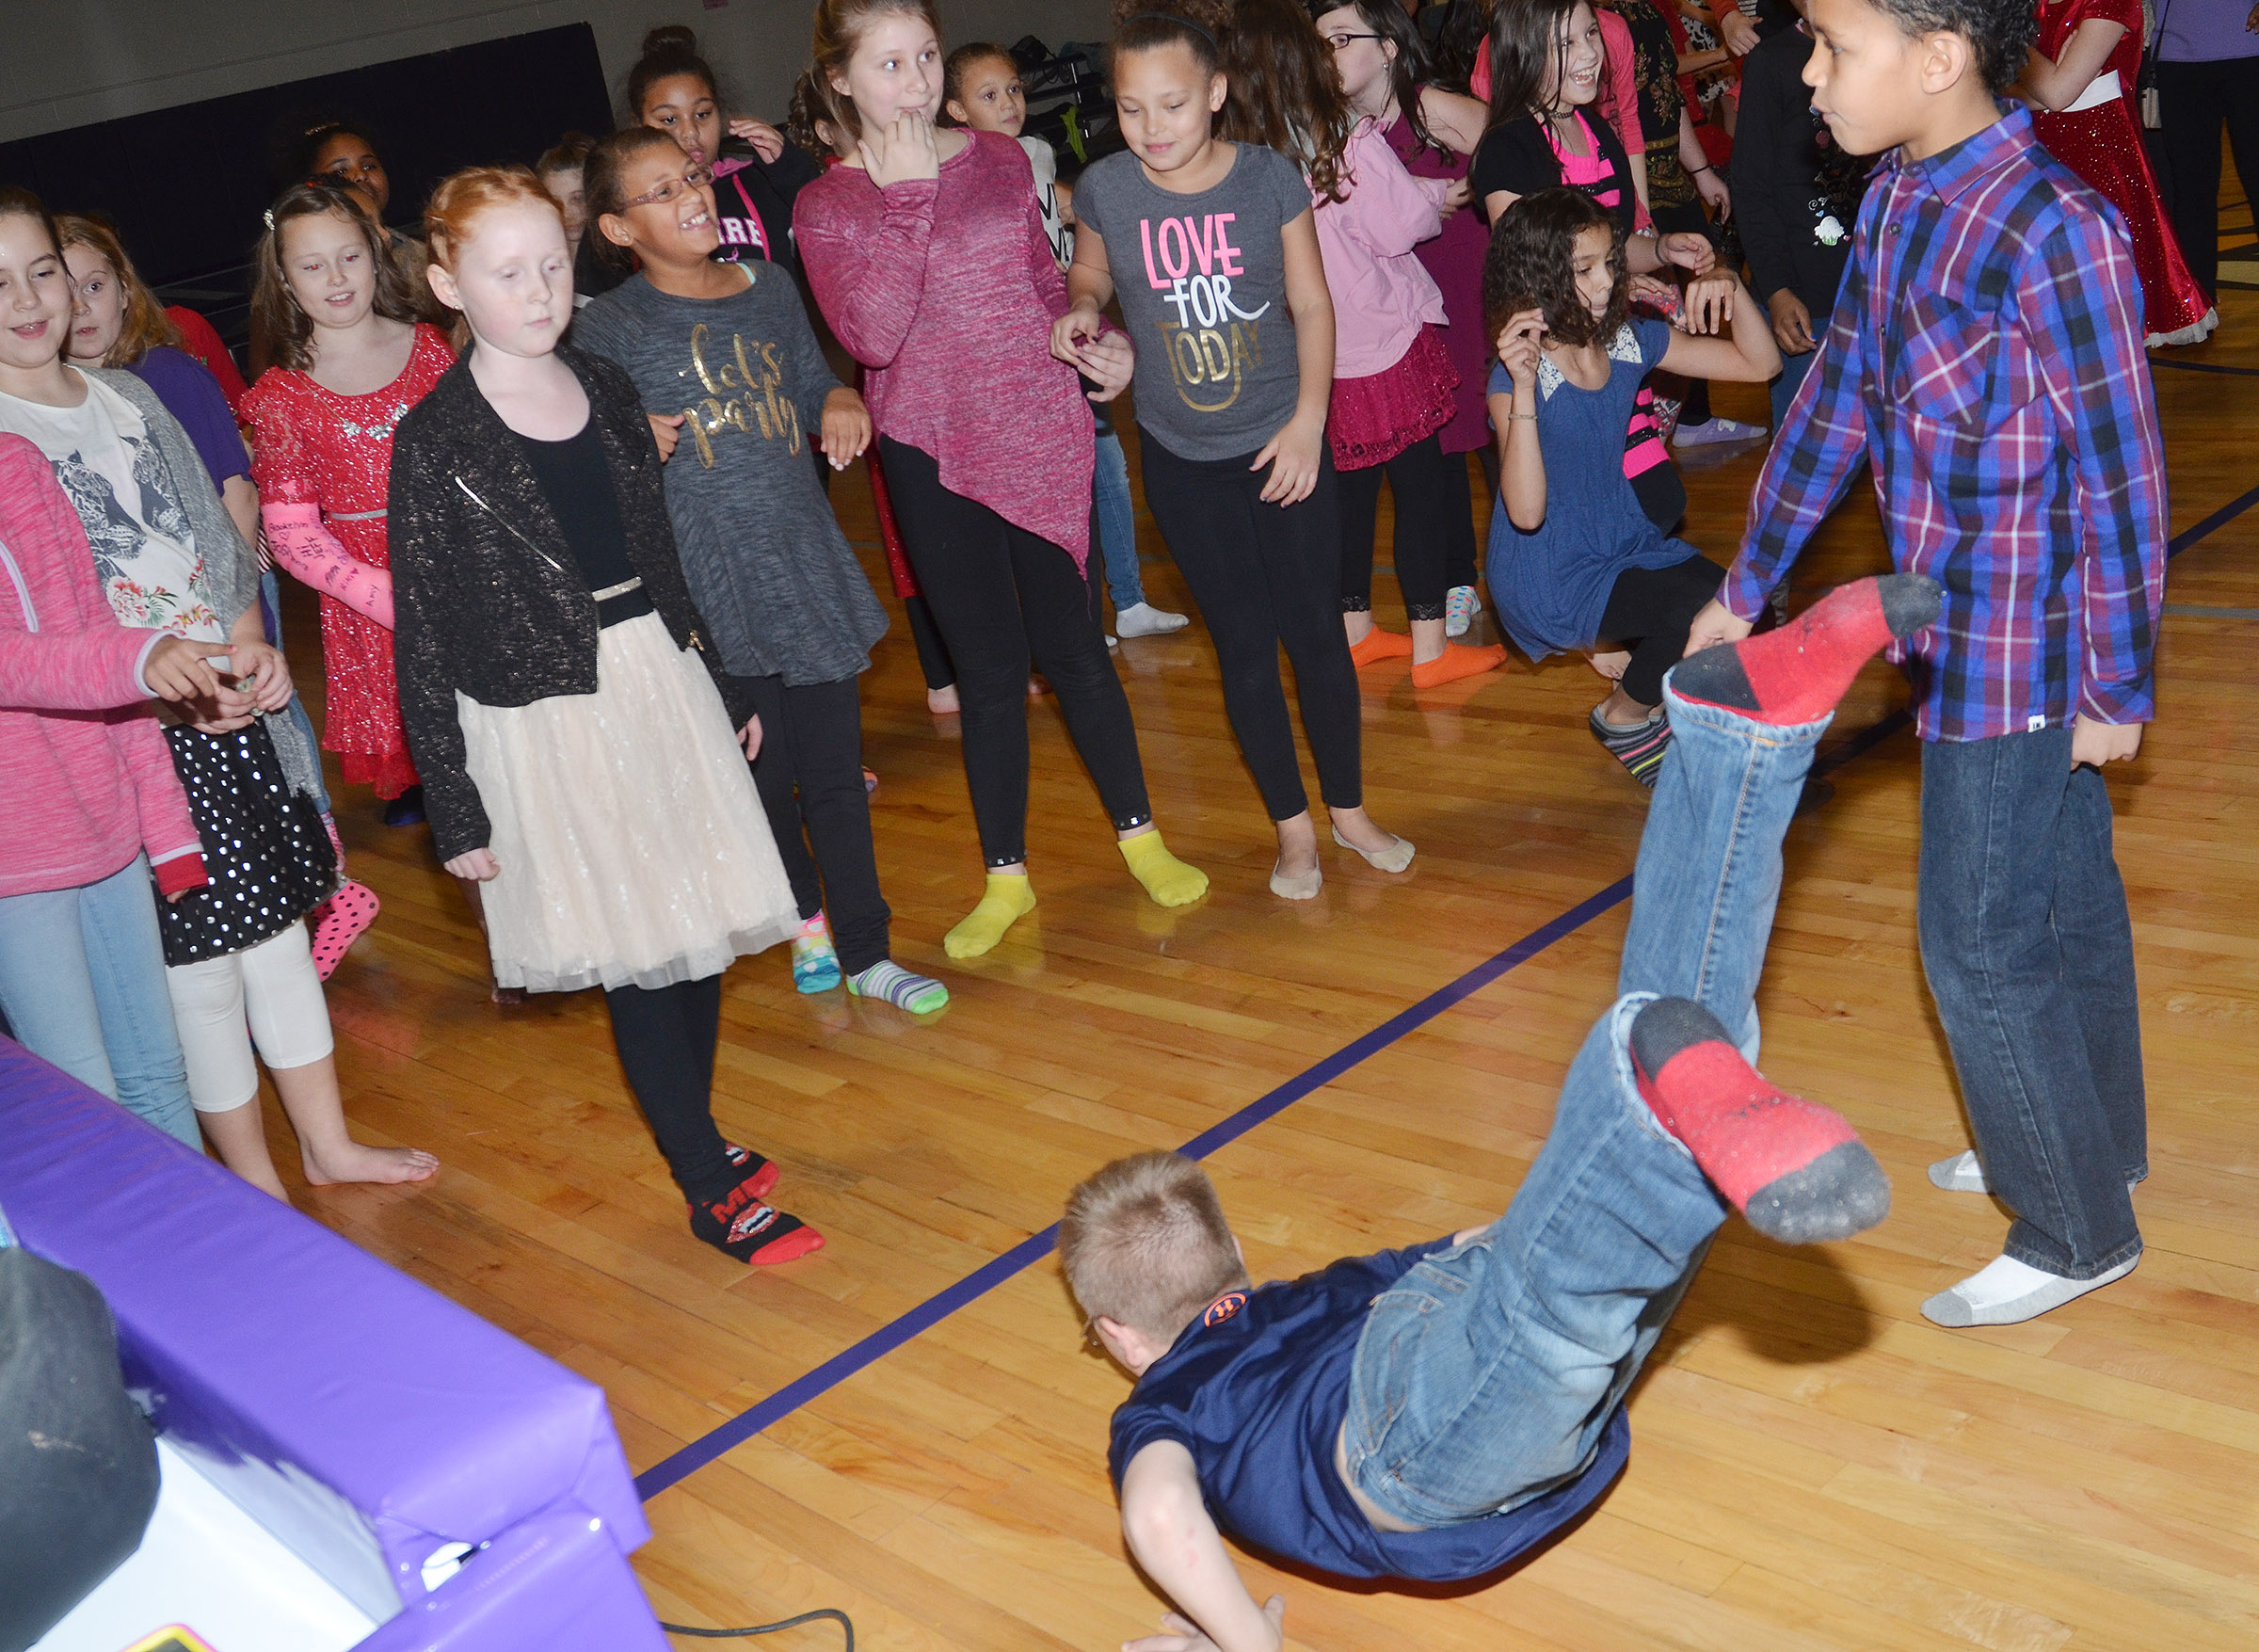 CES fourth-graders Nora Harris, at left, and Ethan Irwin compete in a dance battle.